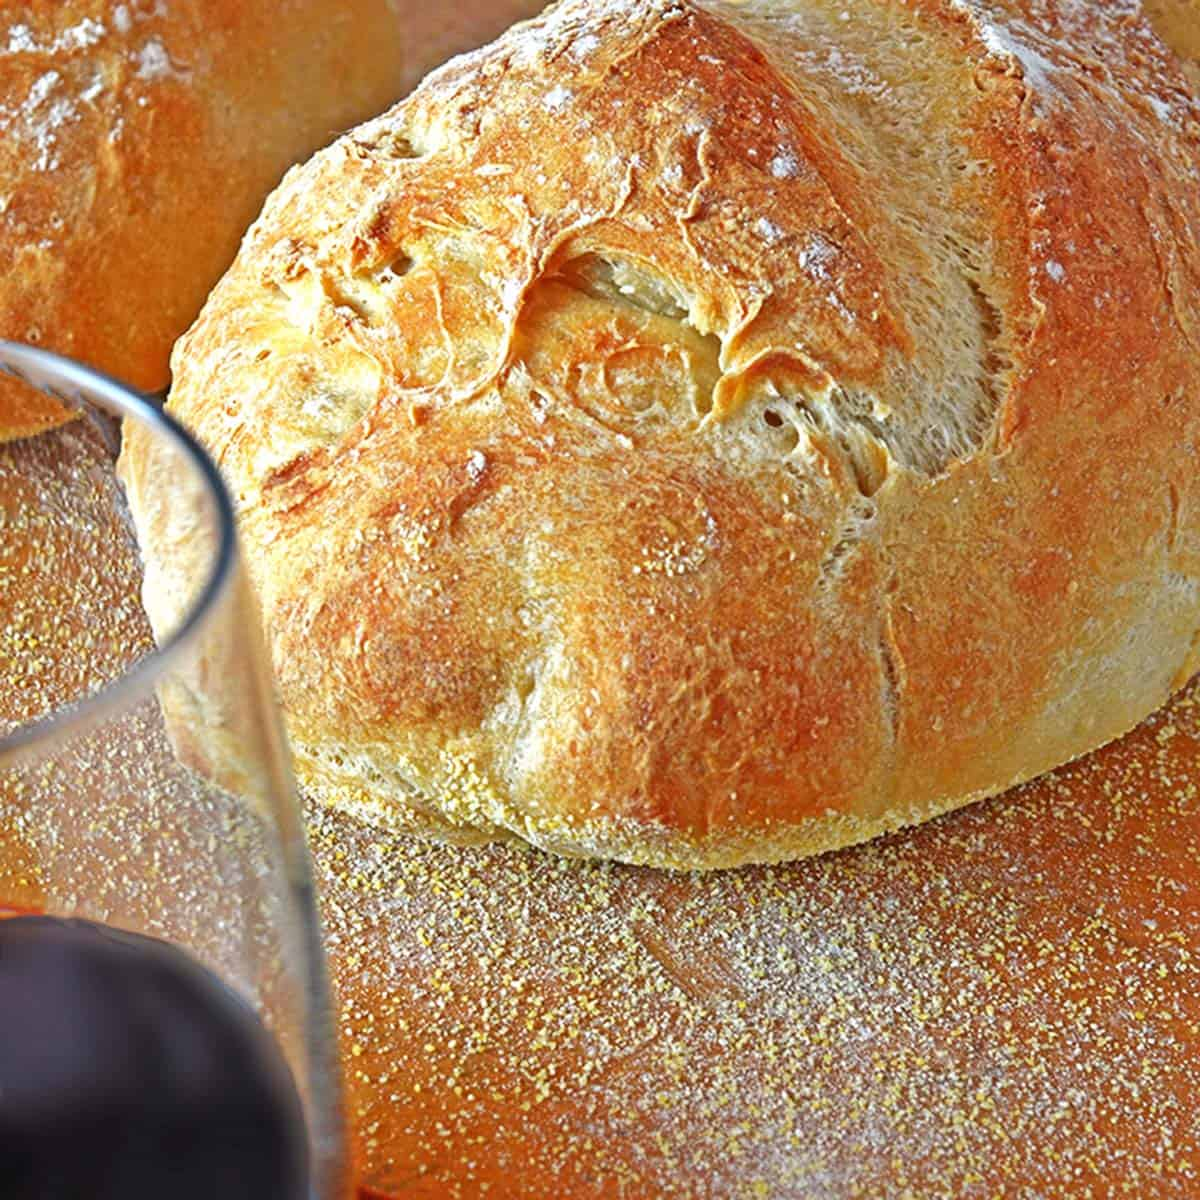 A loaf of bread with a glass of red wine.